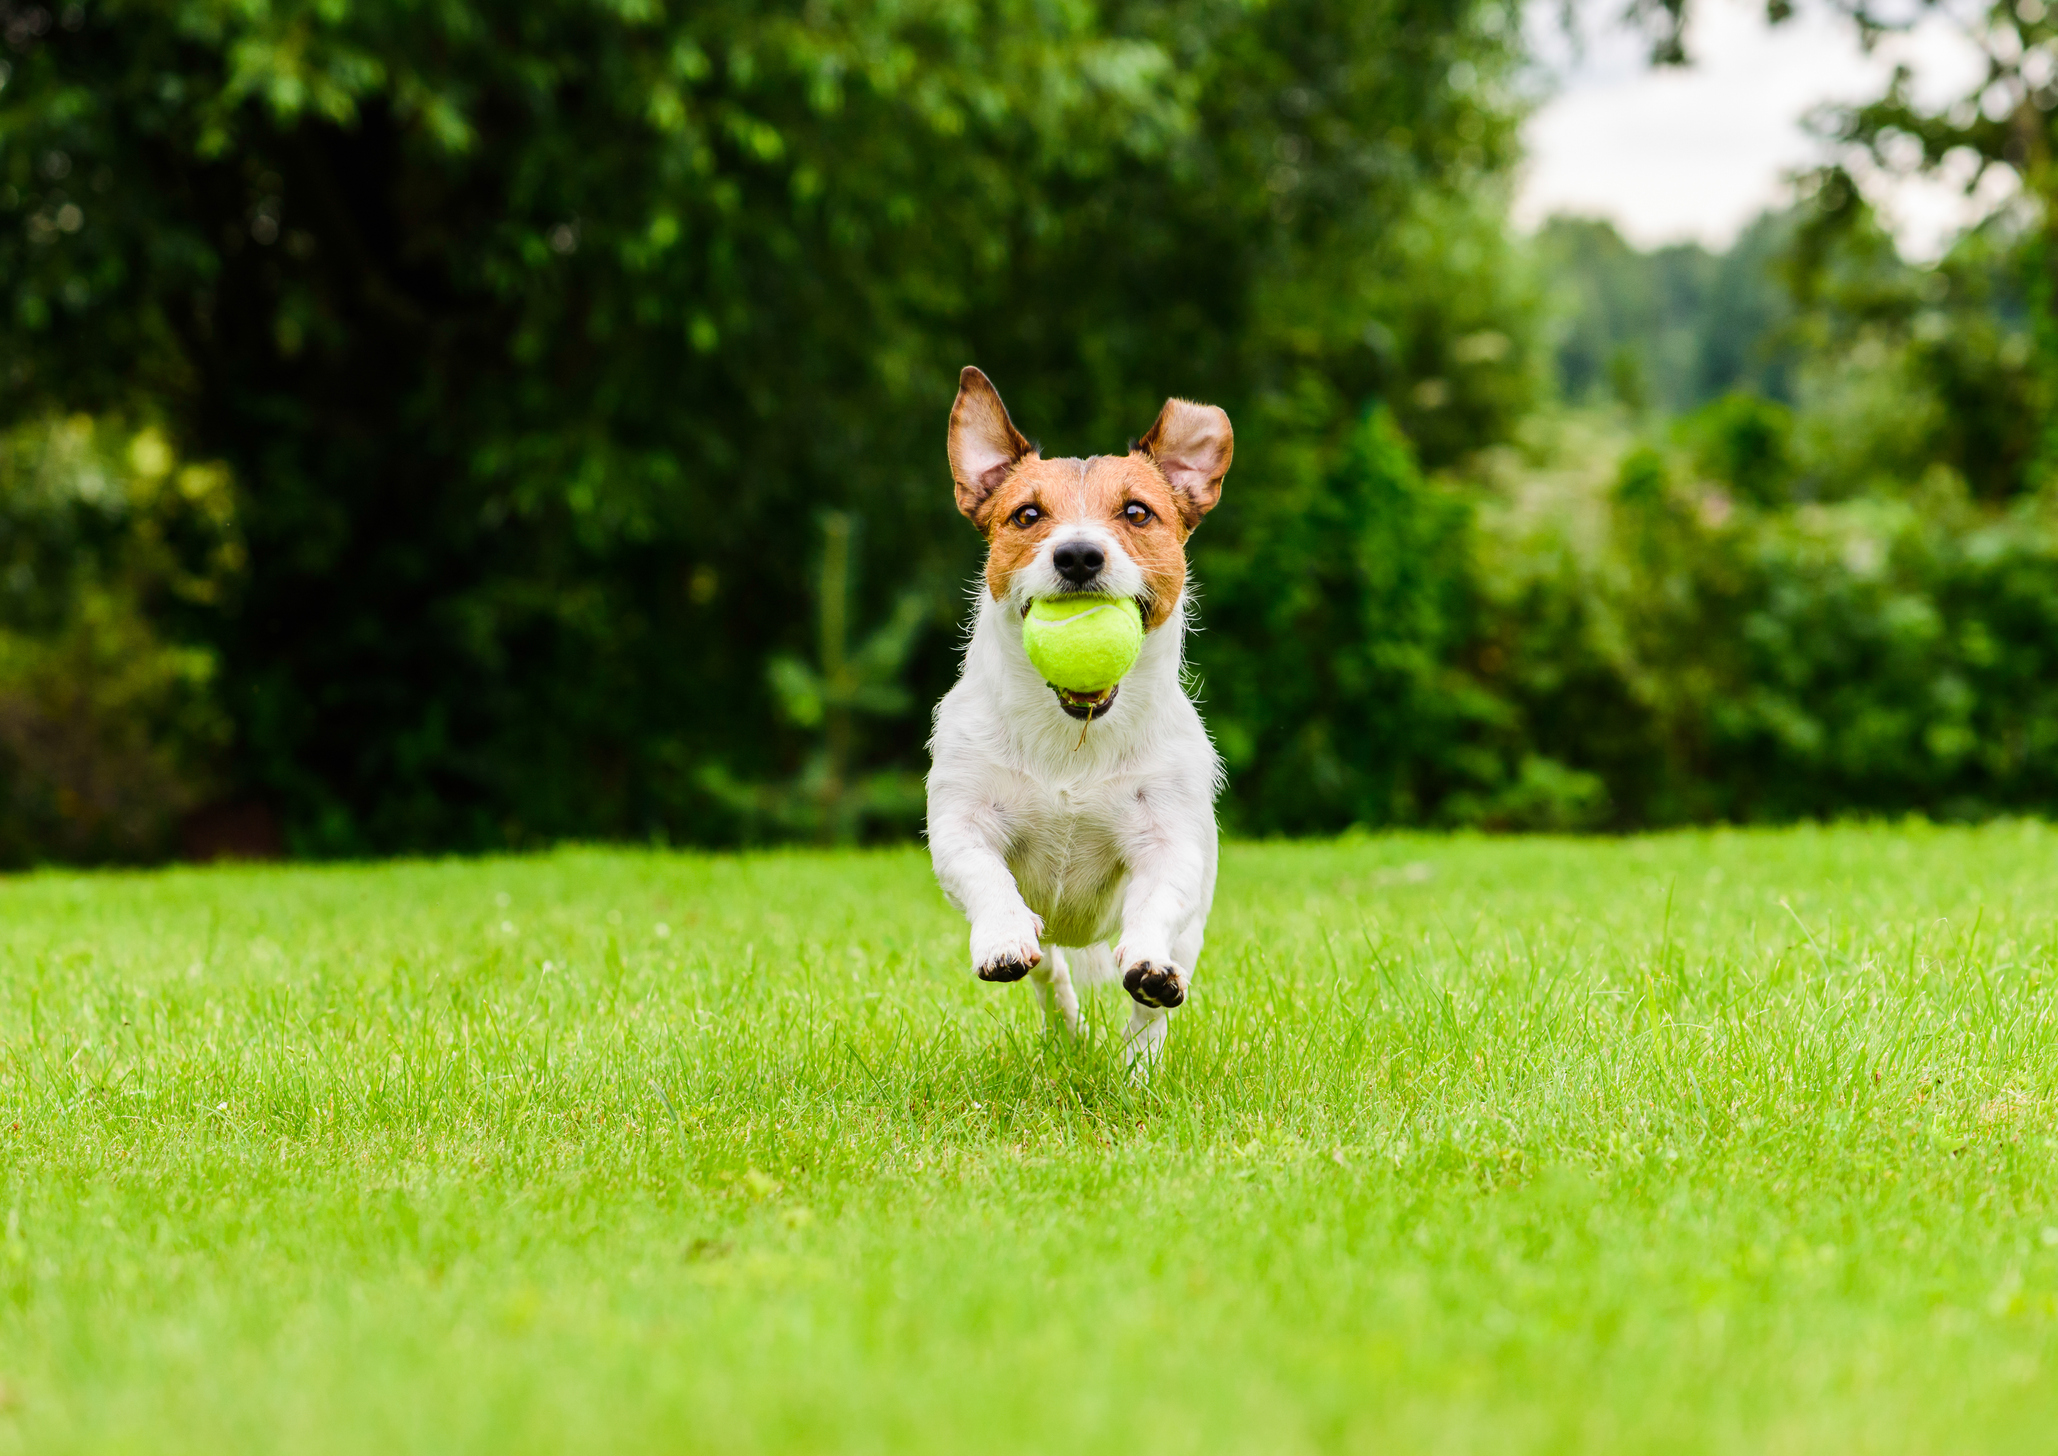 Dog running with ball on grass